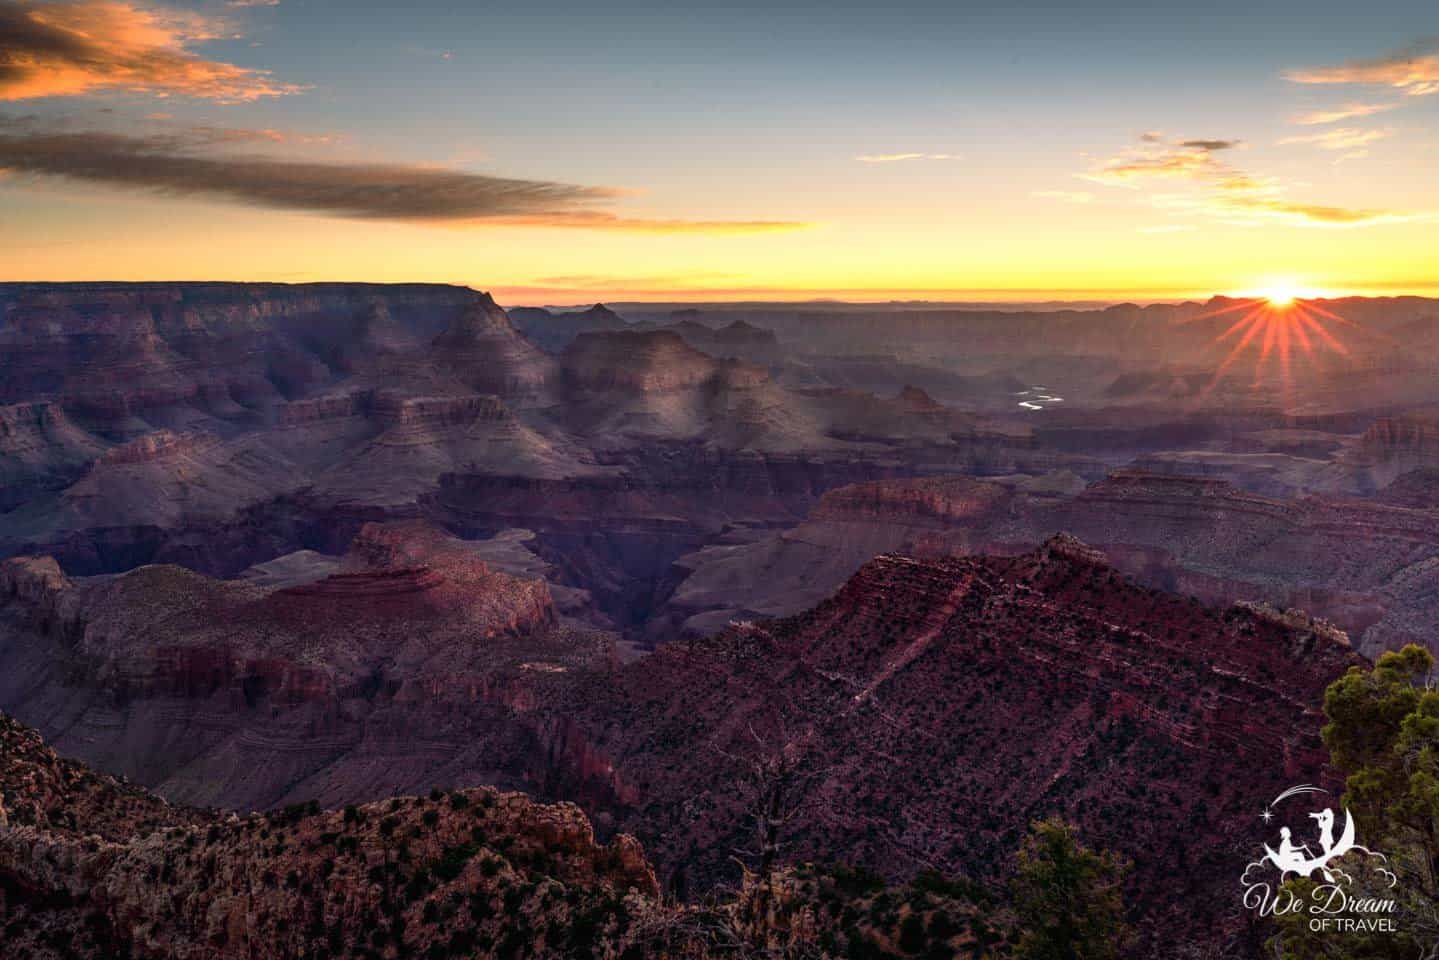 Sunrise photography from Grandview Point on the Grand Canyon South Rim.